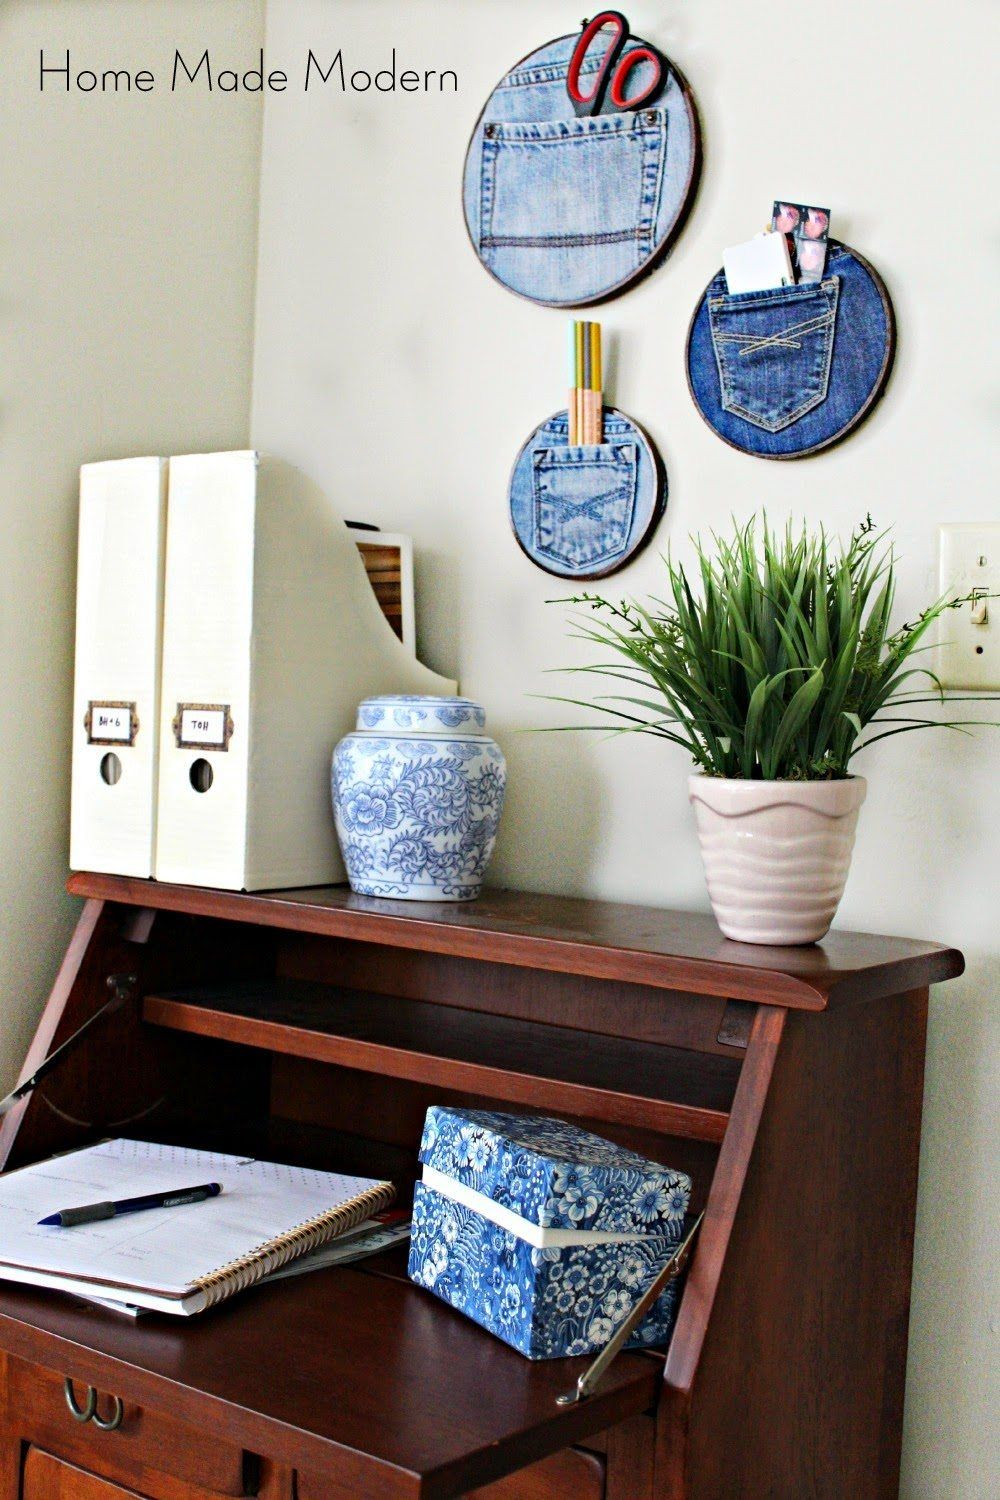 Innovative organizers using old jeans and embroidery hoops